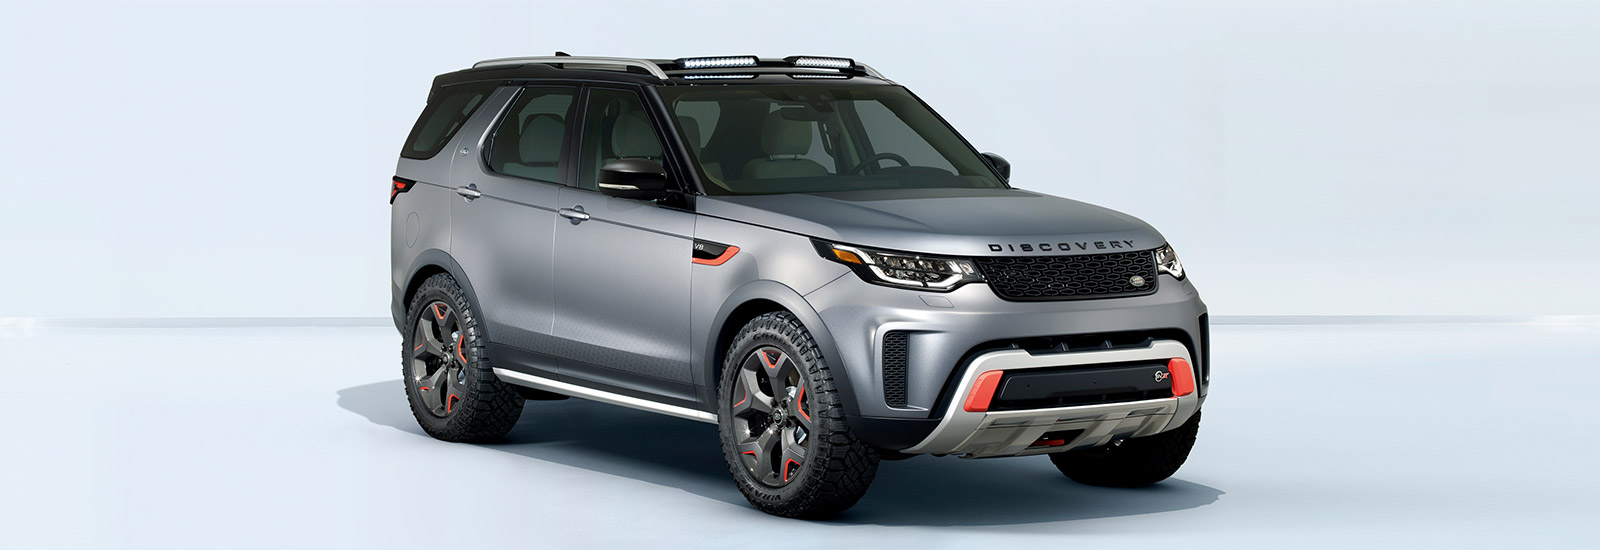 2018 land rover sport release date.  date click u0027loginu0027 in the toprighthand corner to sign up and configure a new  car or browse our extensive range of new nearly prereg stock cars inside 2018 land rover sport release date